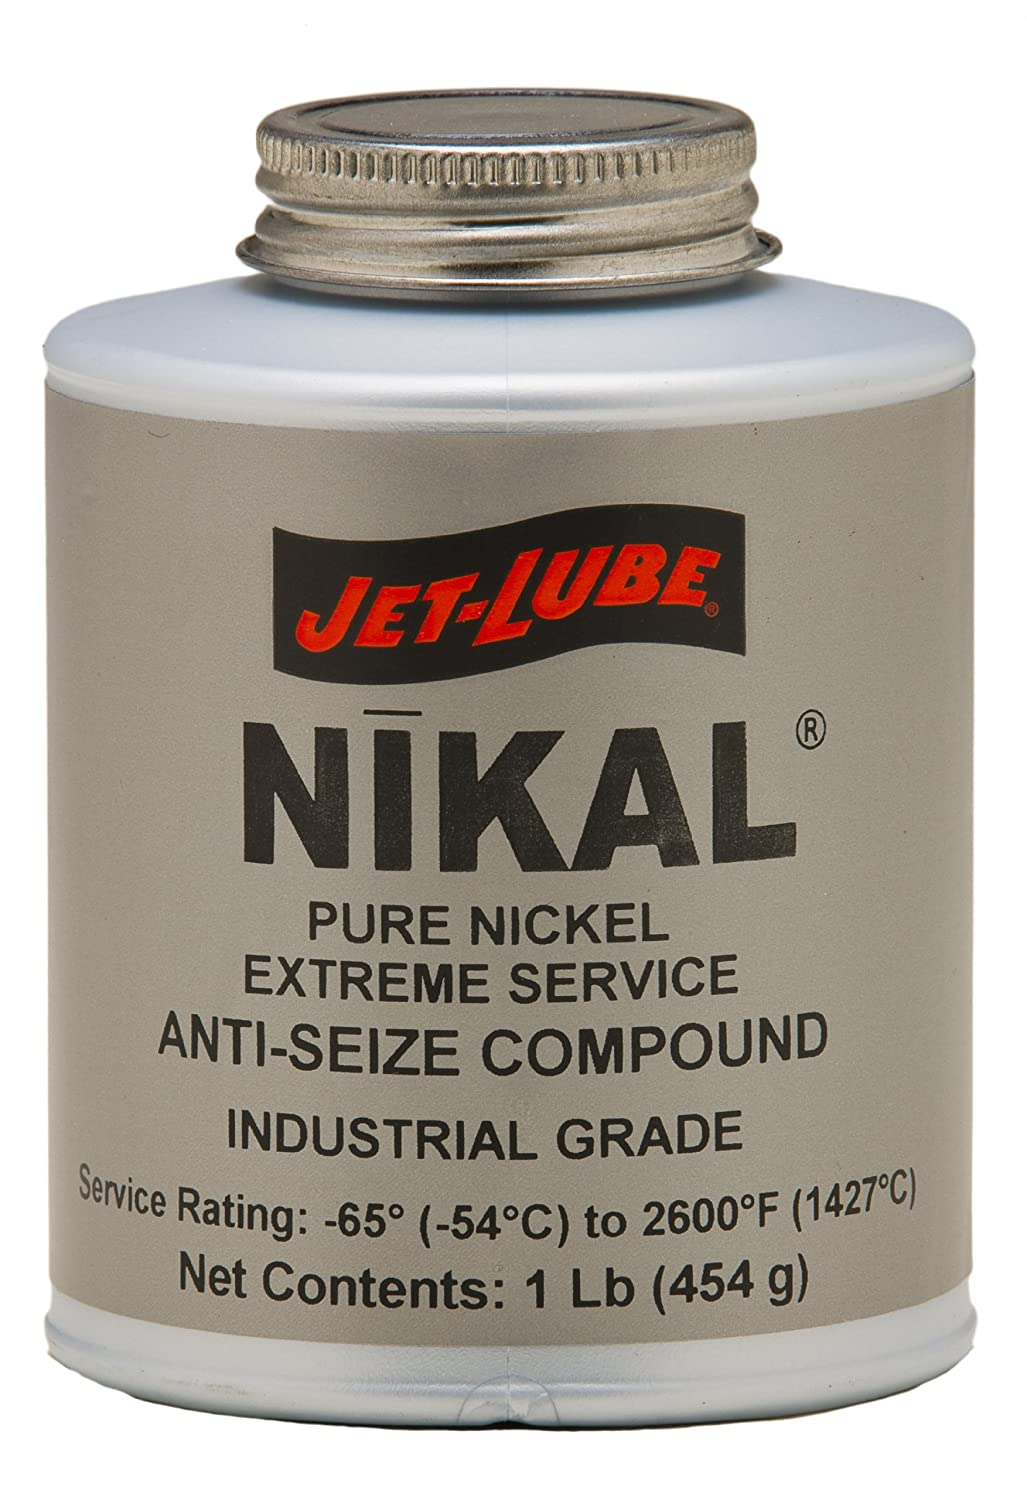 Jet-Lube Pure Nickel Extreme Anti-Seize and Thread Lubricant, 1 lbs Brush Top Can 13604 399-13604